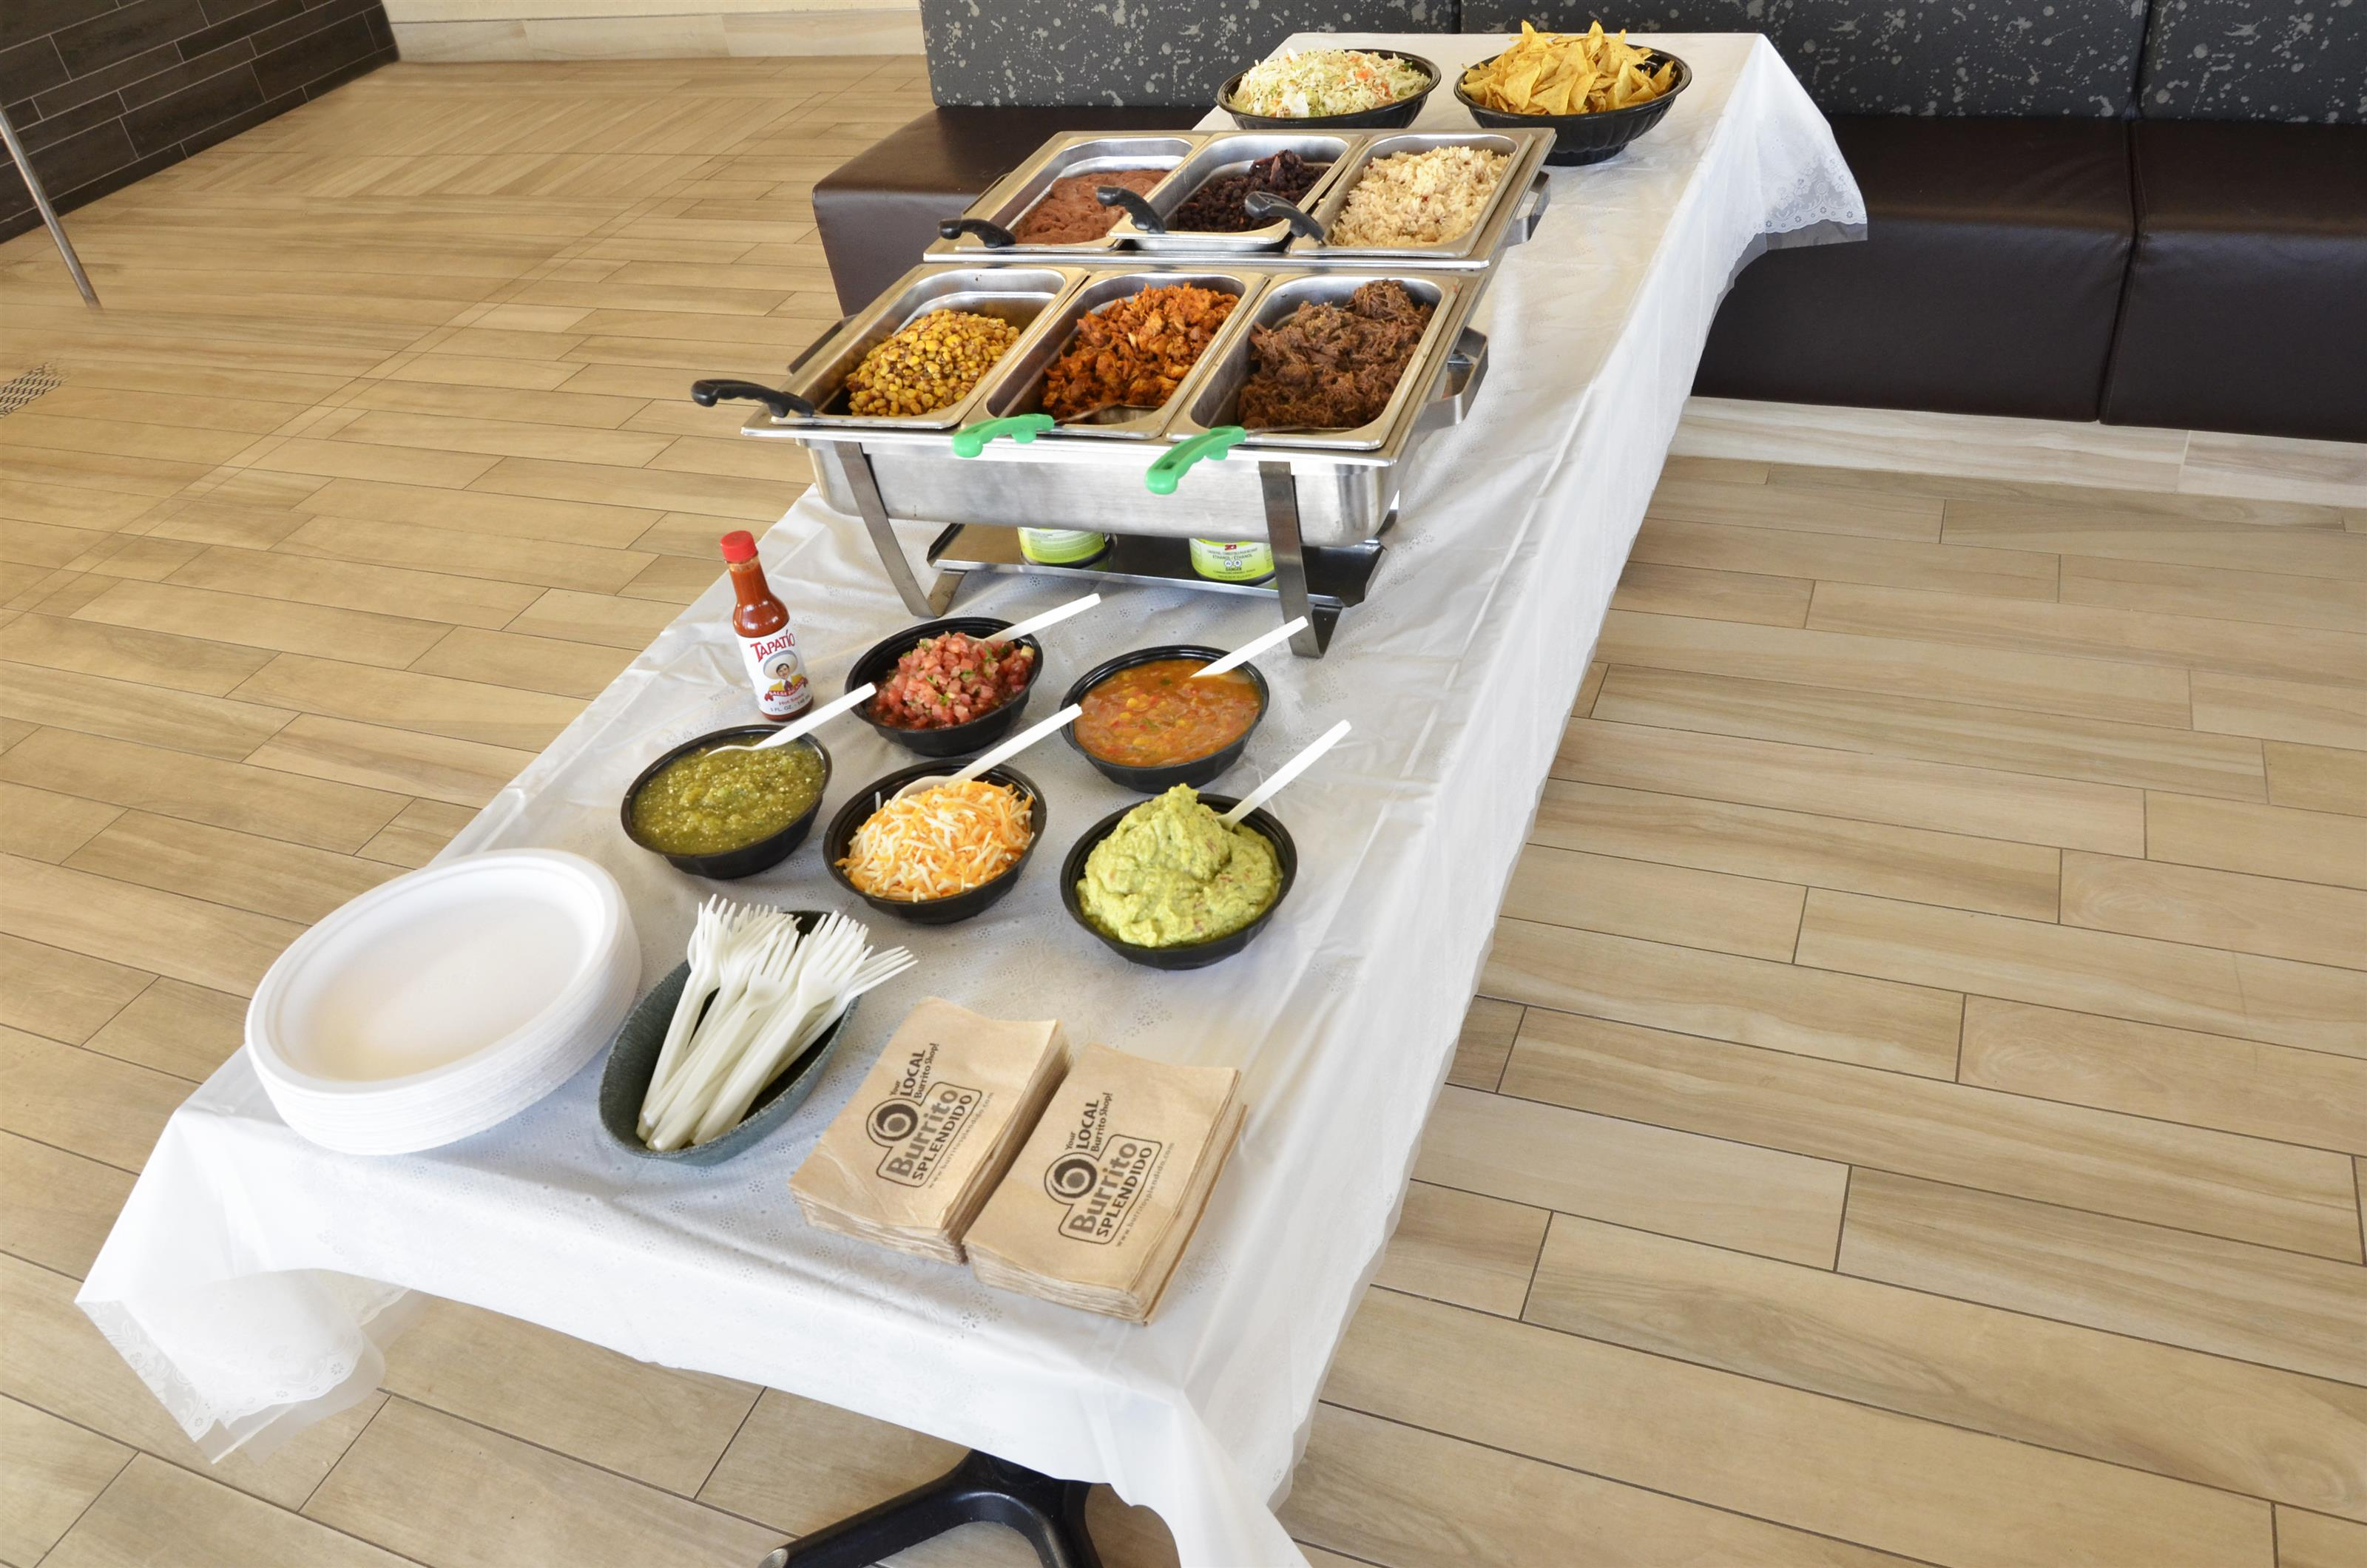 overhead view of warming trays on a table with plastic forks, napkins, plates and bowls filled with additional toppings